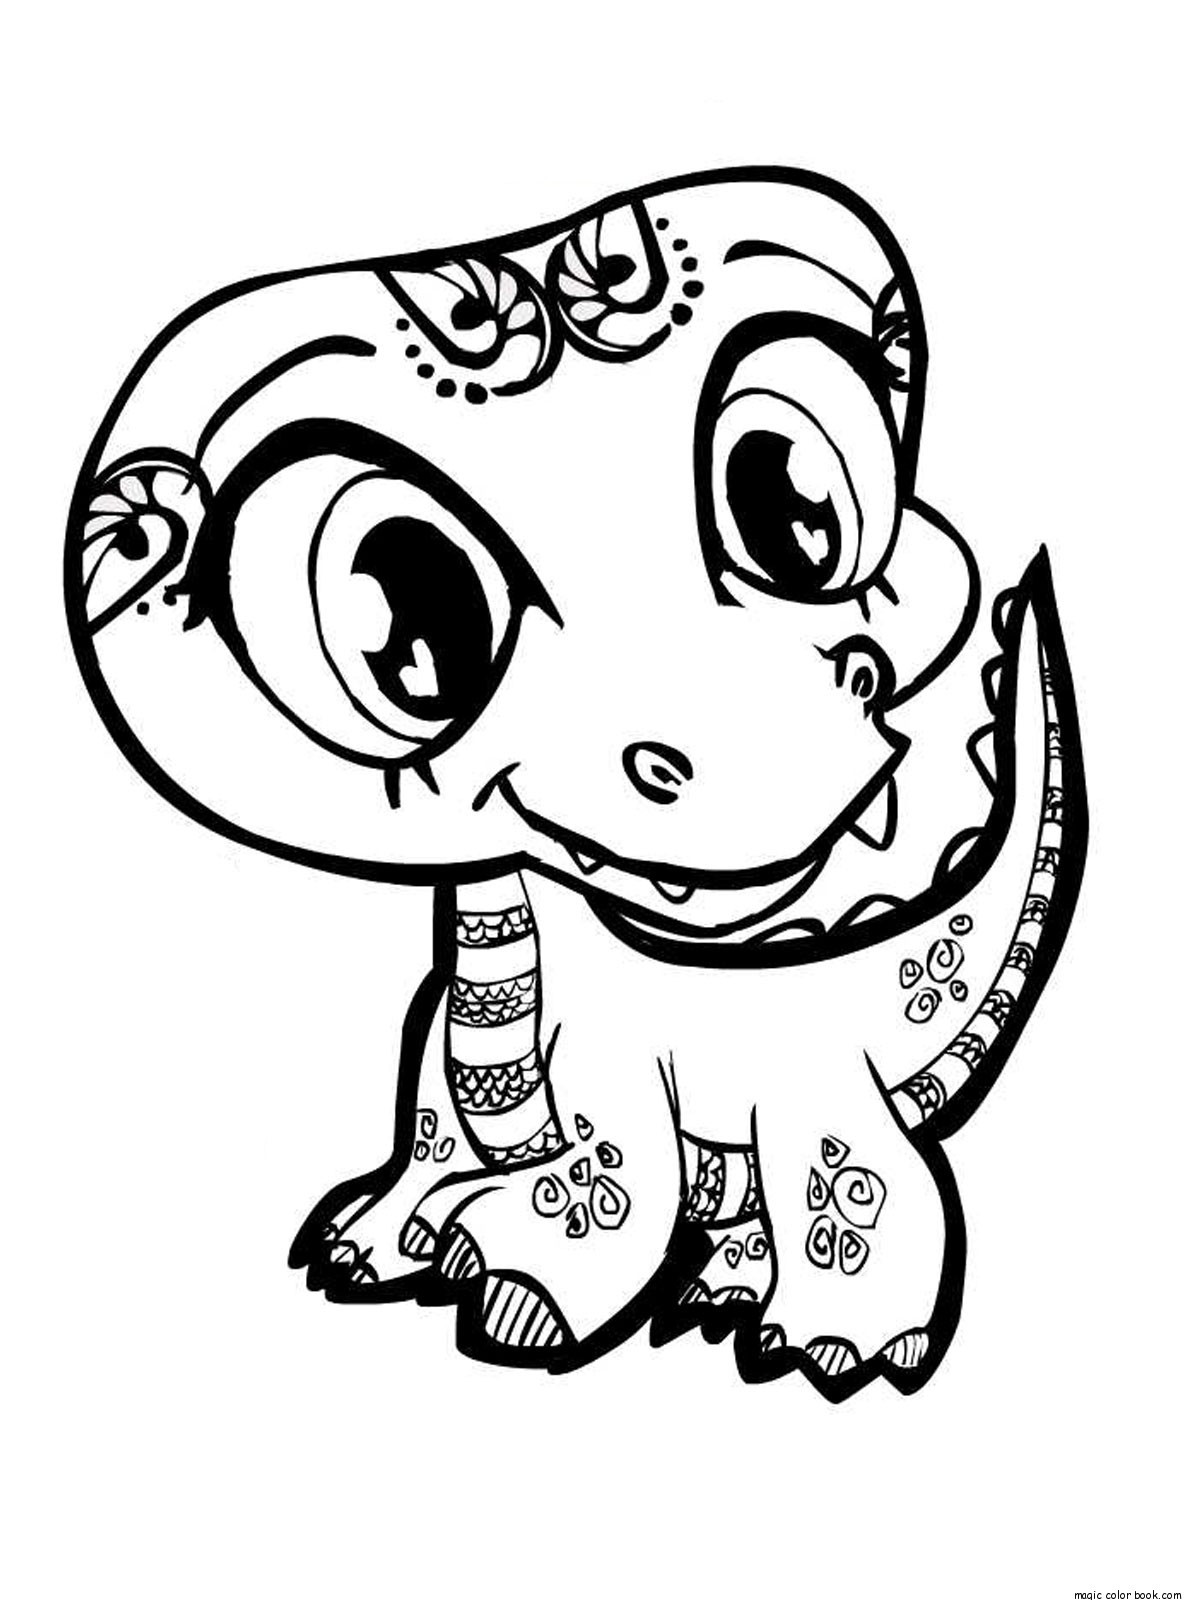 Animal Coloring Sheets For Girls  Stylish Cute Animal Coloring Pages For Girls At Out Animal